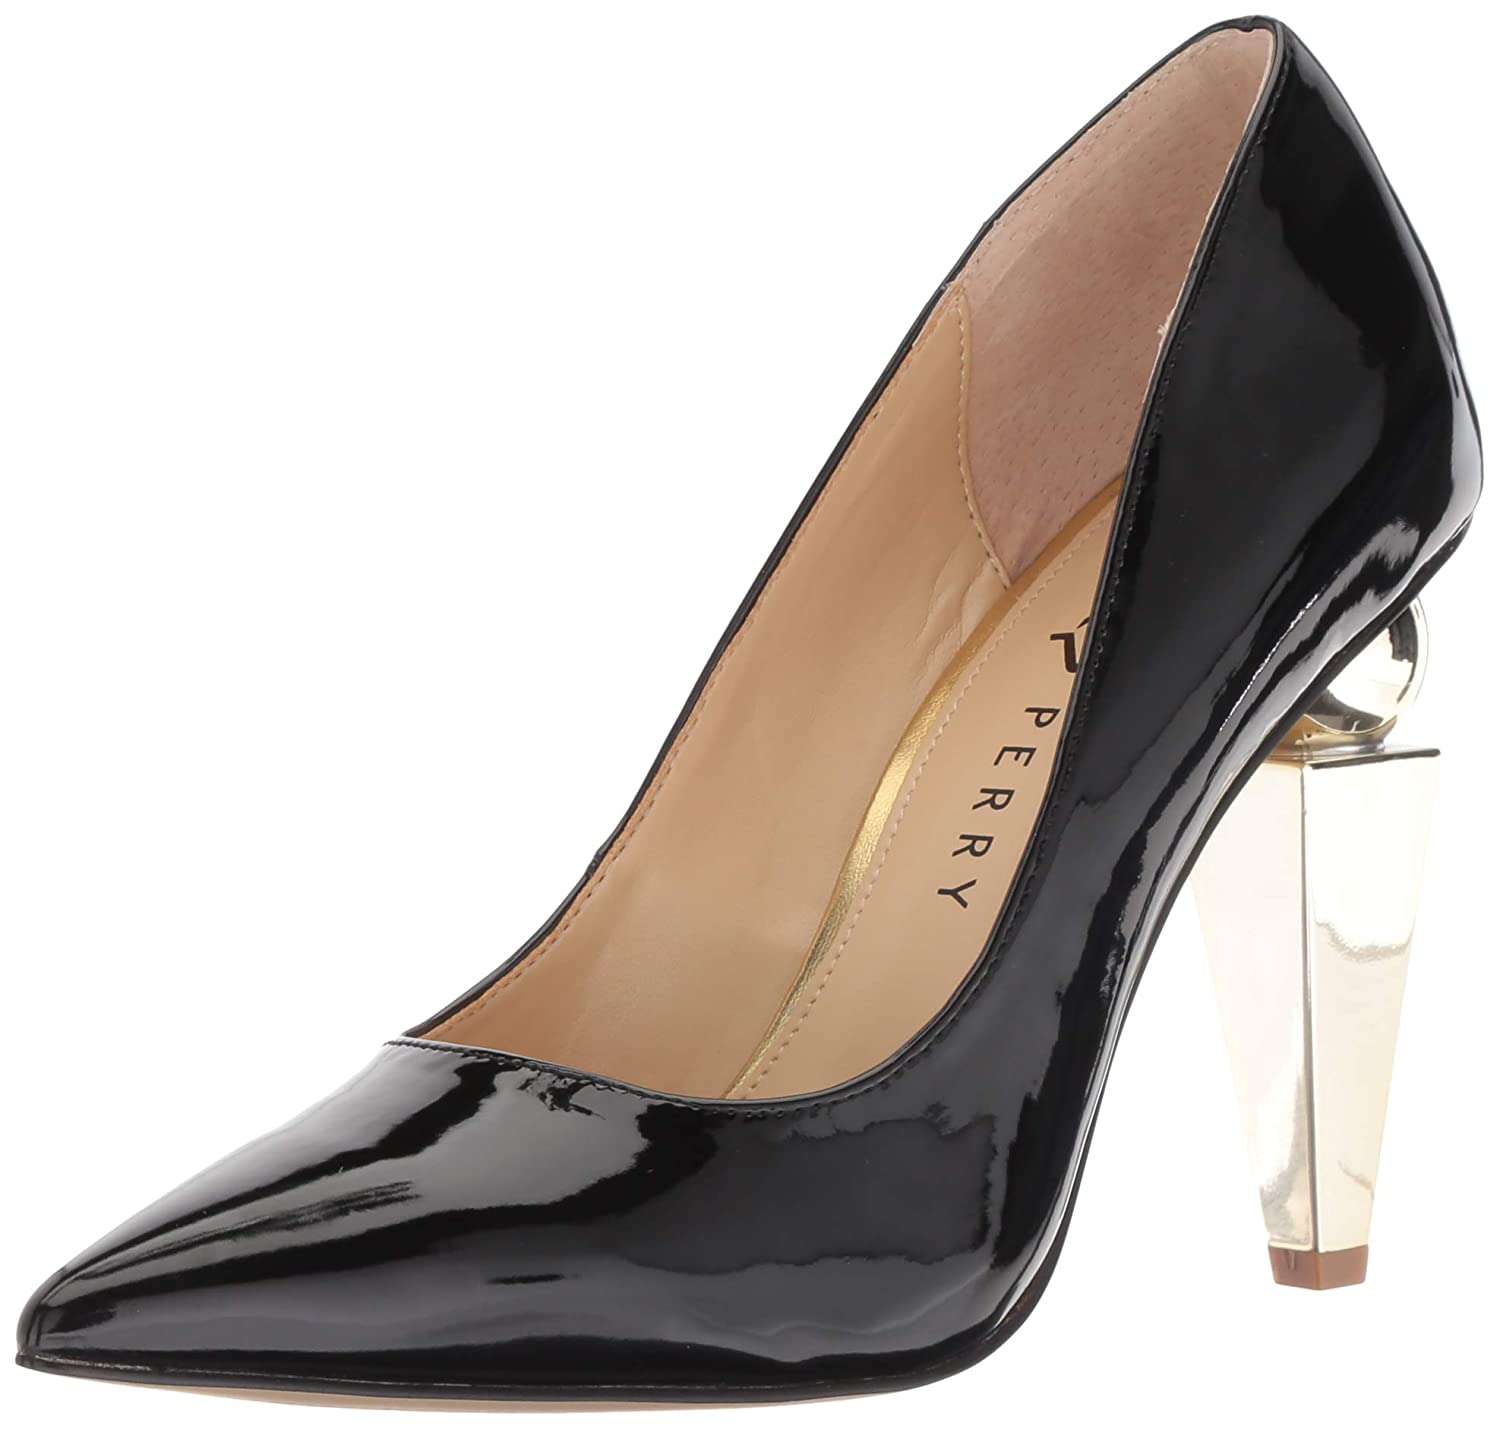 Katy Perry Womens Kp0559 Pointed Toe Ankle Wrap Classic Pumps